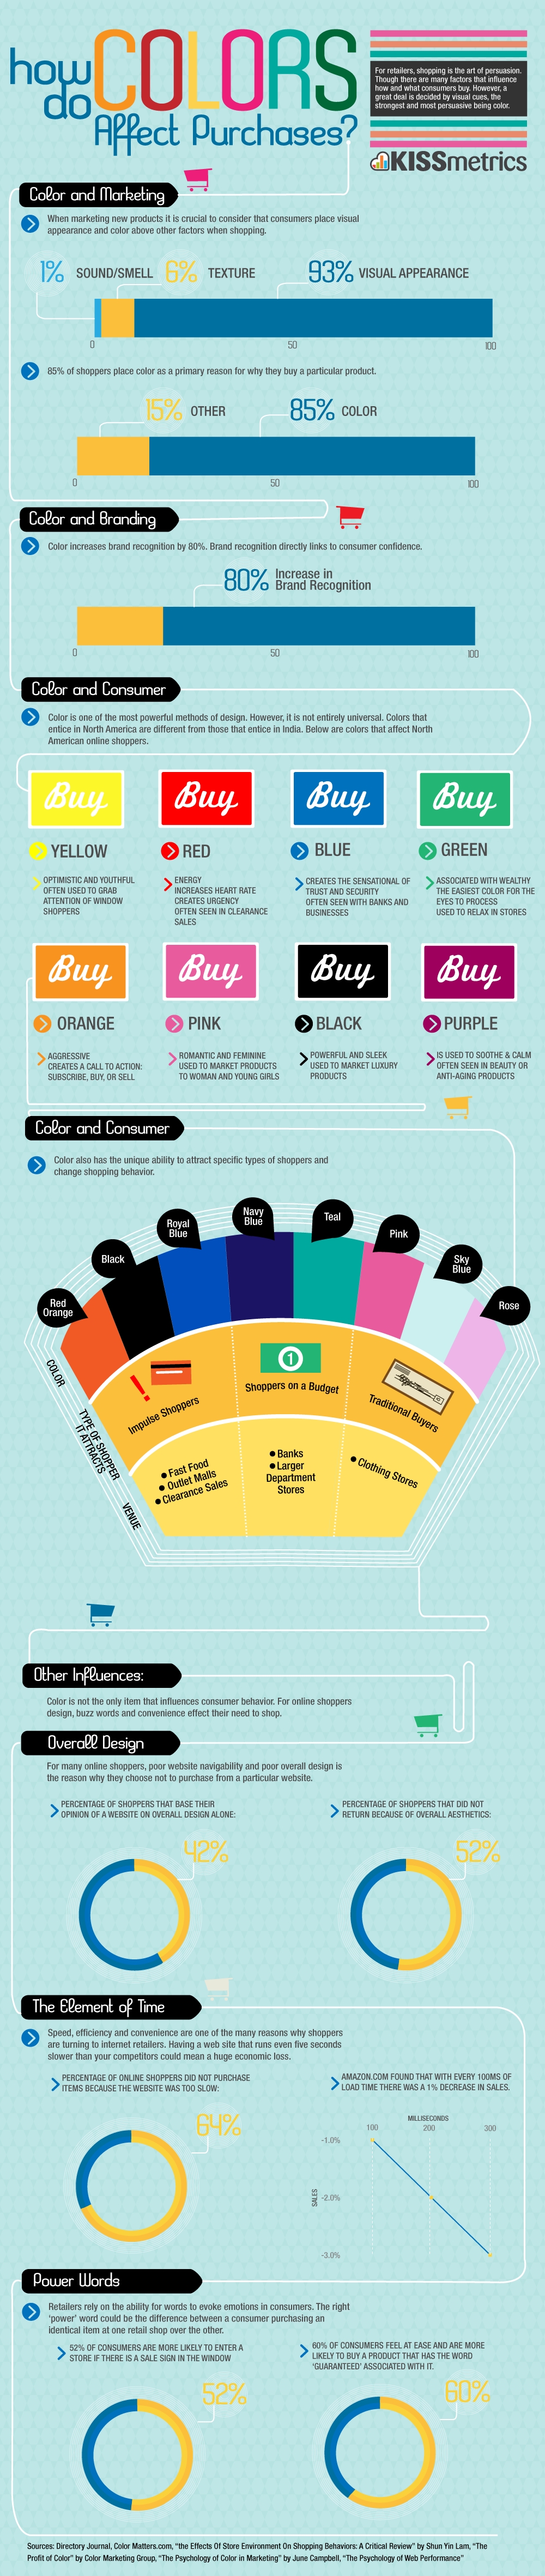 How-Do-Colors-Affect-Purchases-infographic